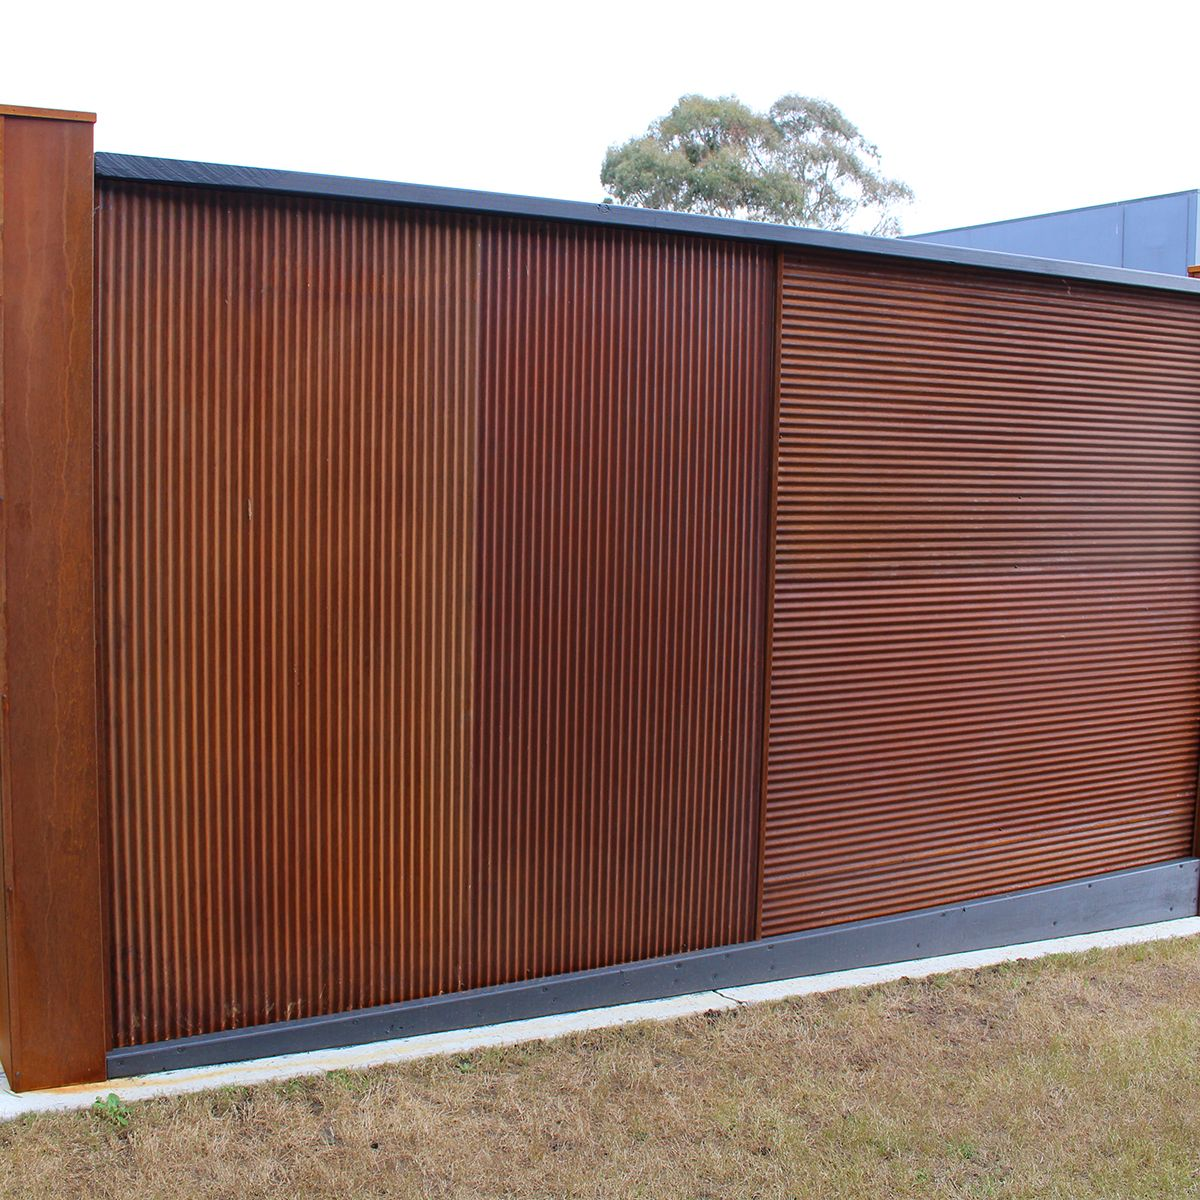 Chippy S Outdoor Stocks The Z Tina Mini Orb Corrugated Rust Metal Sheets These Are A Fantastic Rustic Ad Building A Deck Outdoor Privacy Rustic Garden Fence